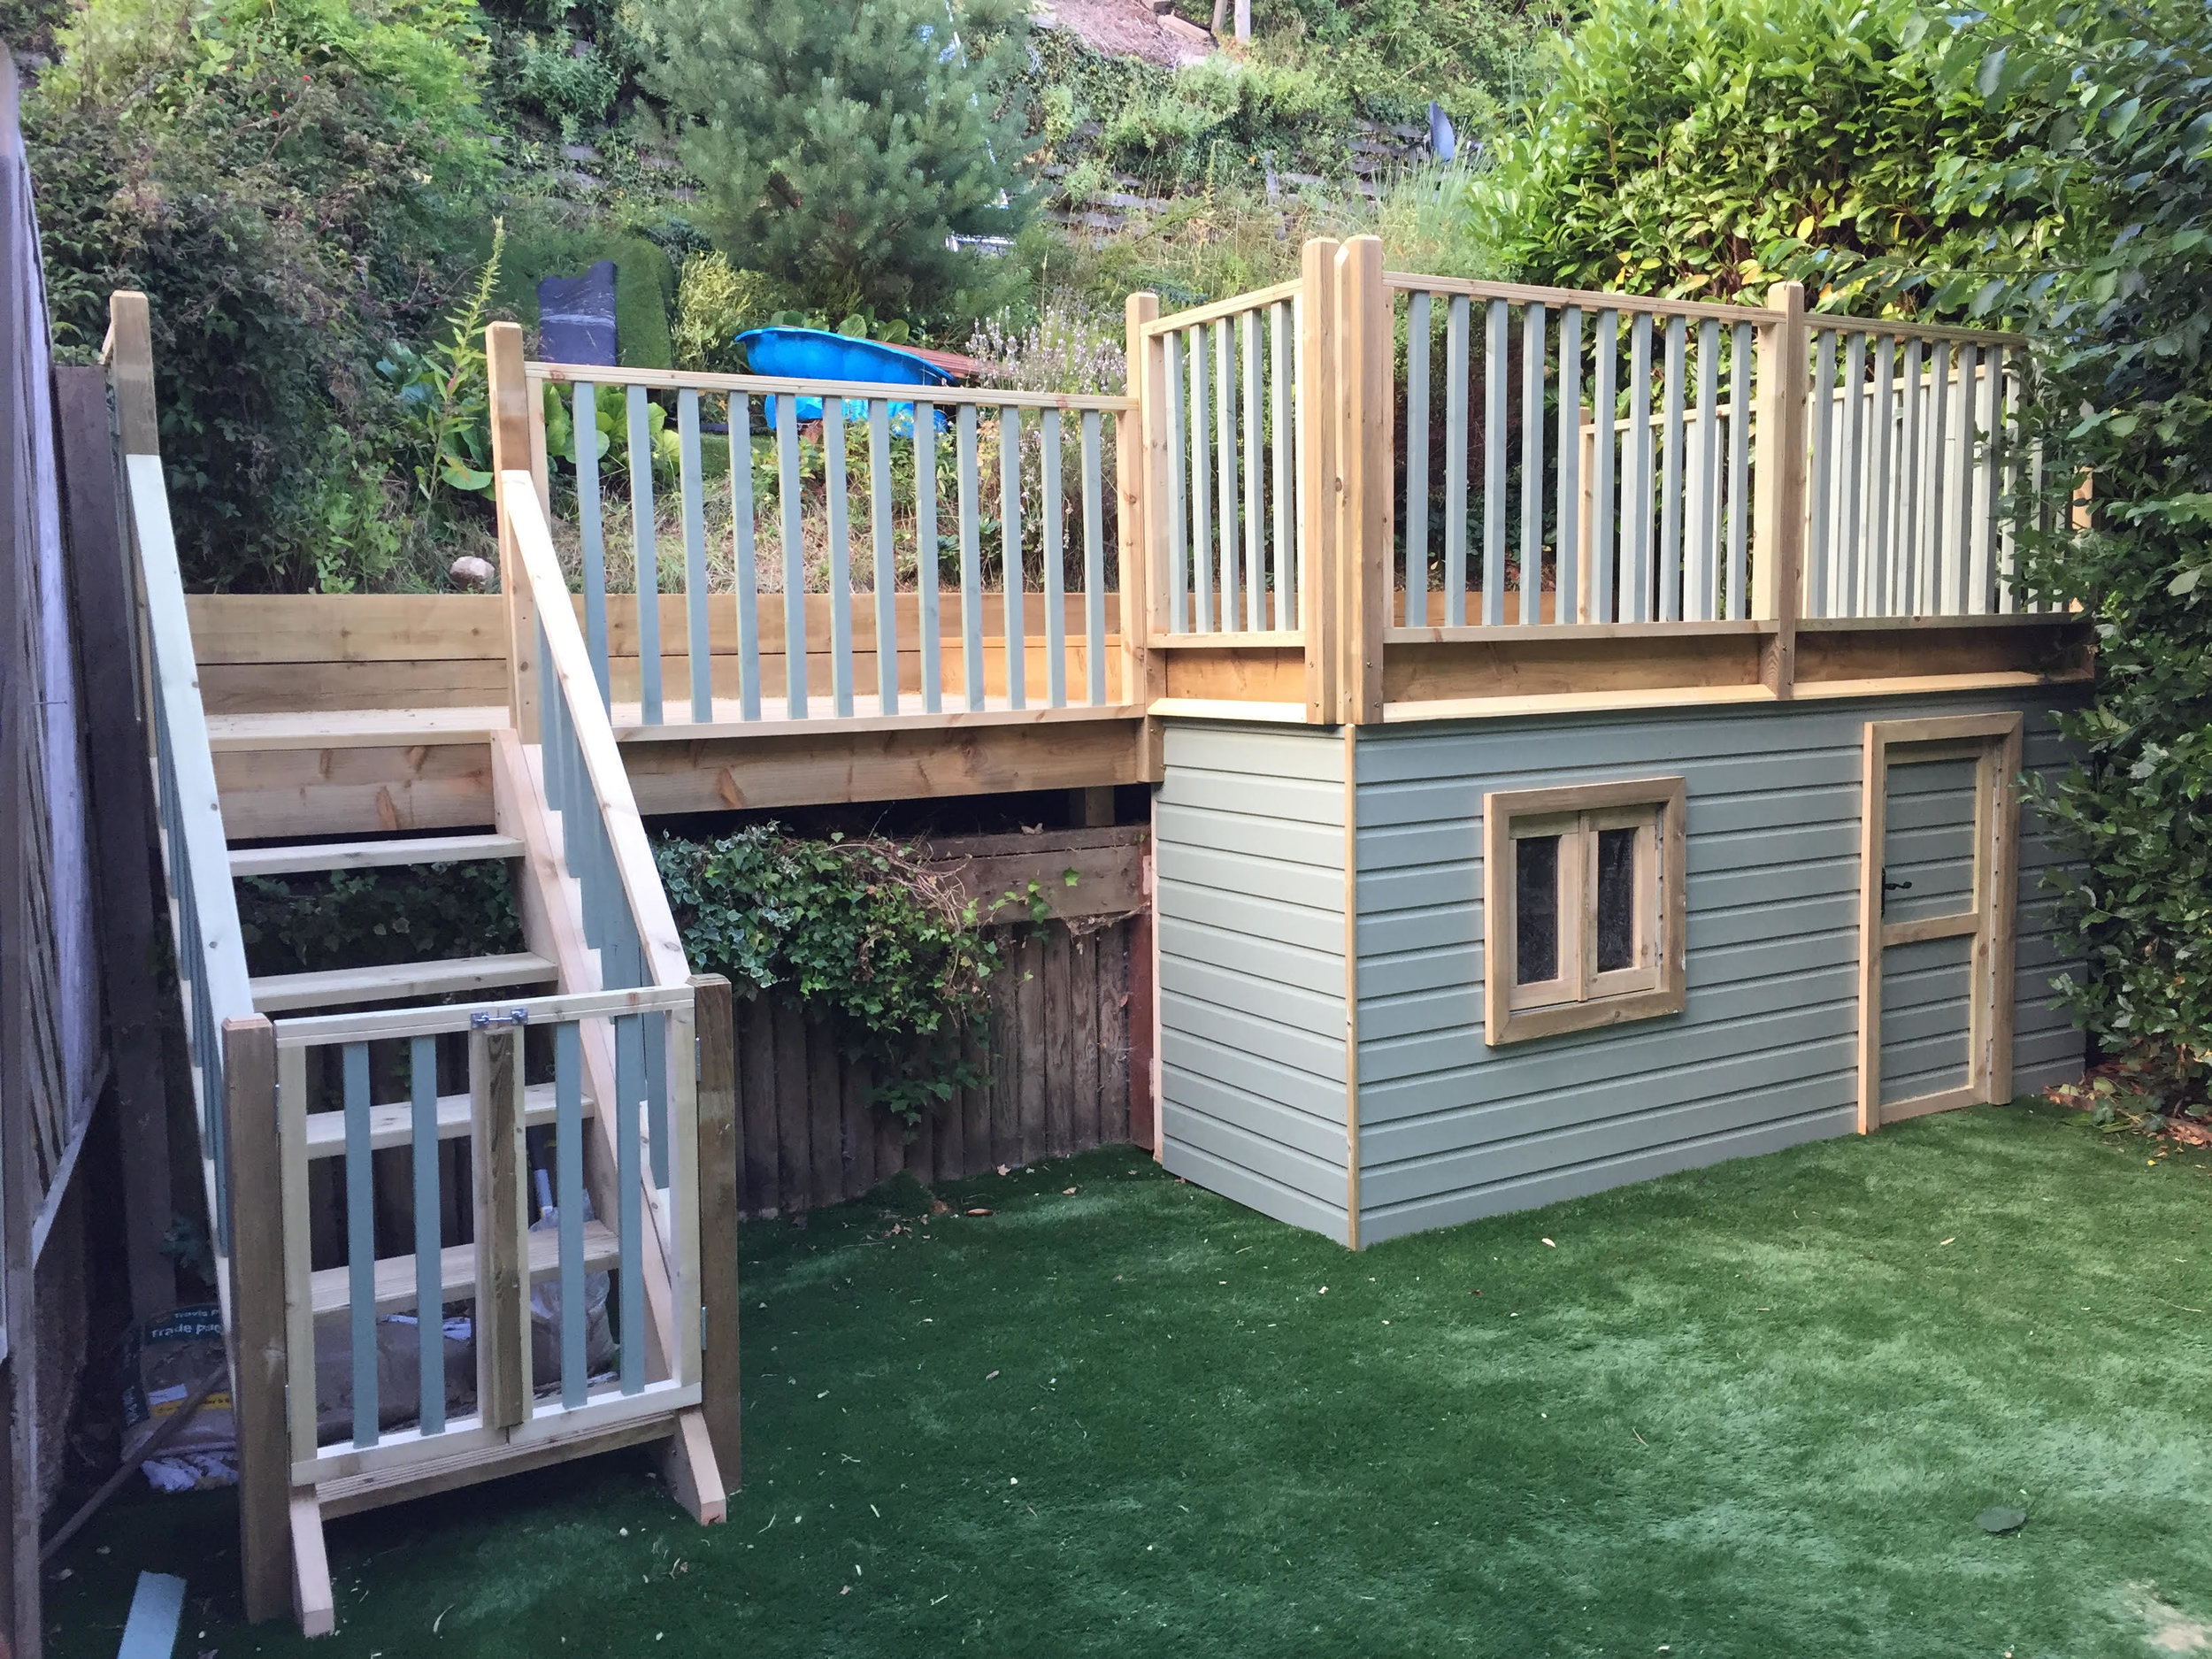 """Nailsworth Raised Decking & Playhouse - """"Rich did an amazing job of removing an old raised decking area and steps and created a whole new space with a den underneath for our kids. Throughout the whole process Rich suggested ways to make it better by using his creative thinking and keeping it within budget. It has ended up to be so much better than we had hoped and all within our budget. Super happy and can't recommend Rich highly enough.""""Mr knight - Nailsworth"""